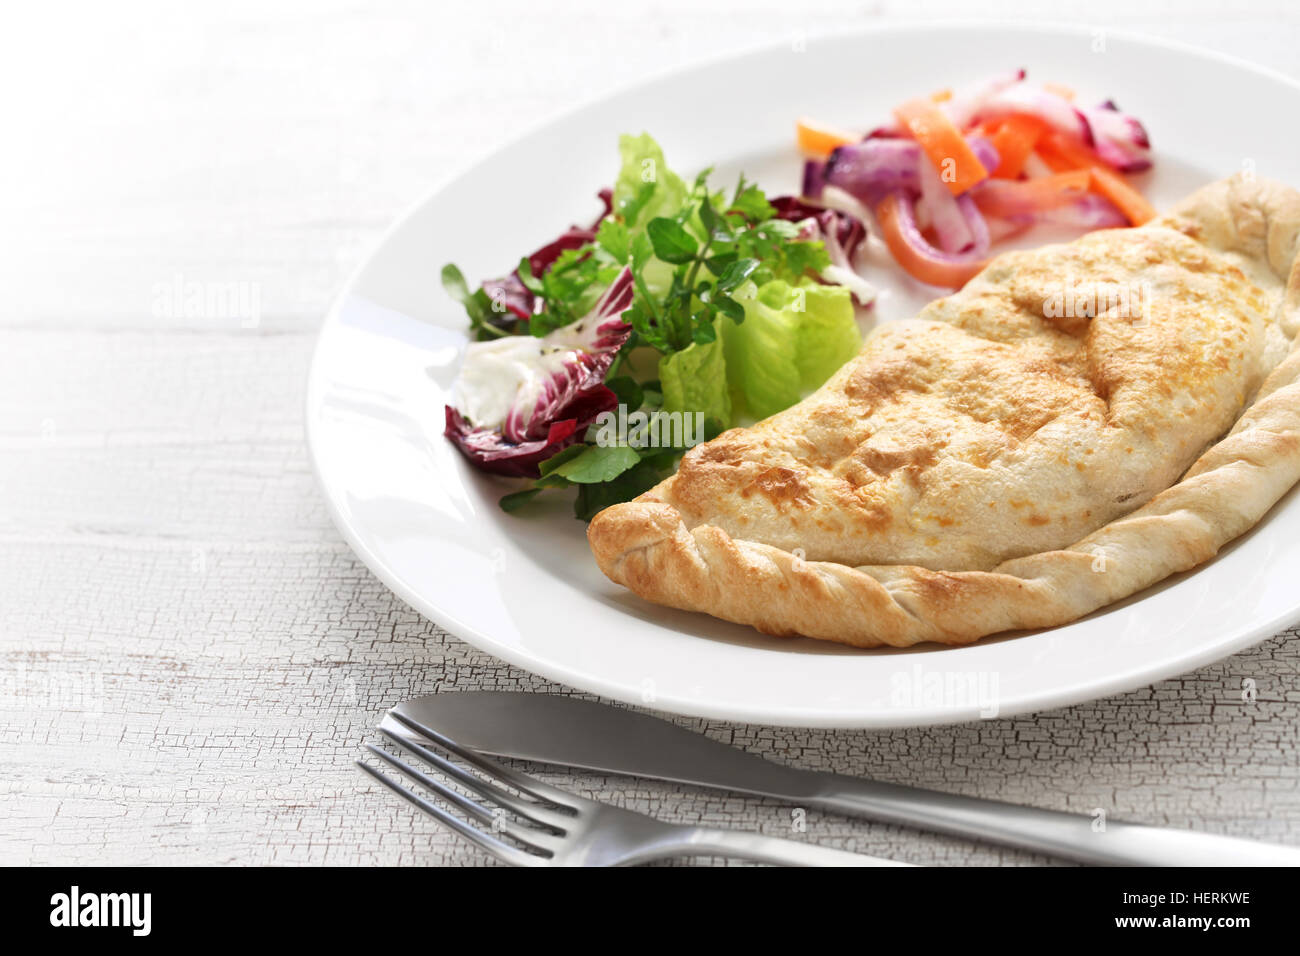 Calzone, pizza farcie repliée, la cuisine italienne Photo Stock